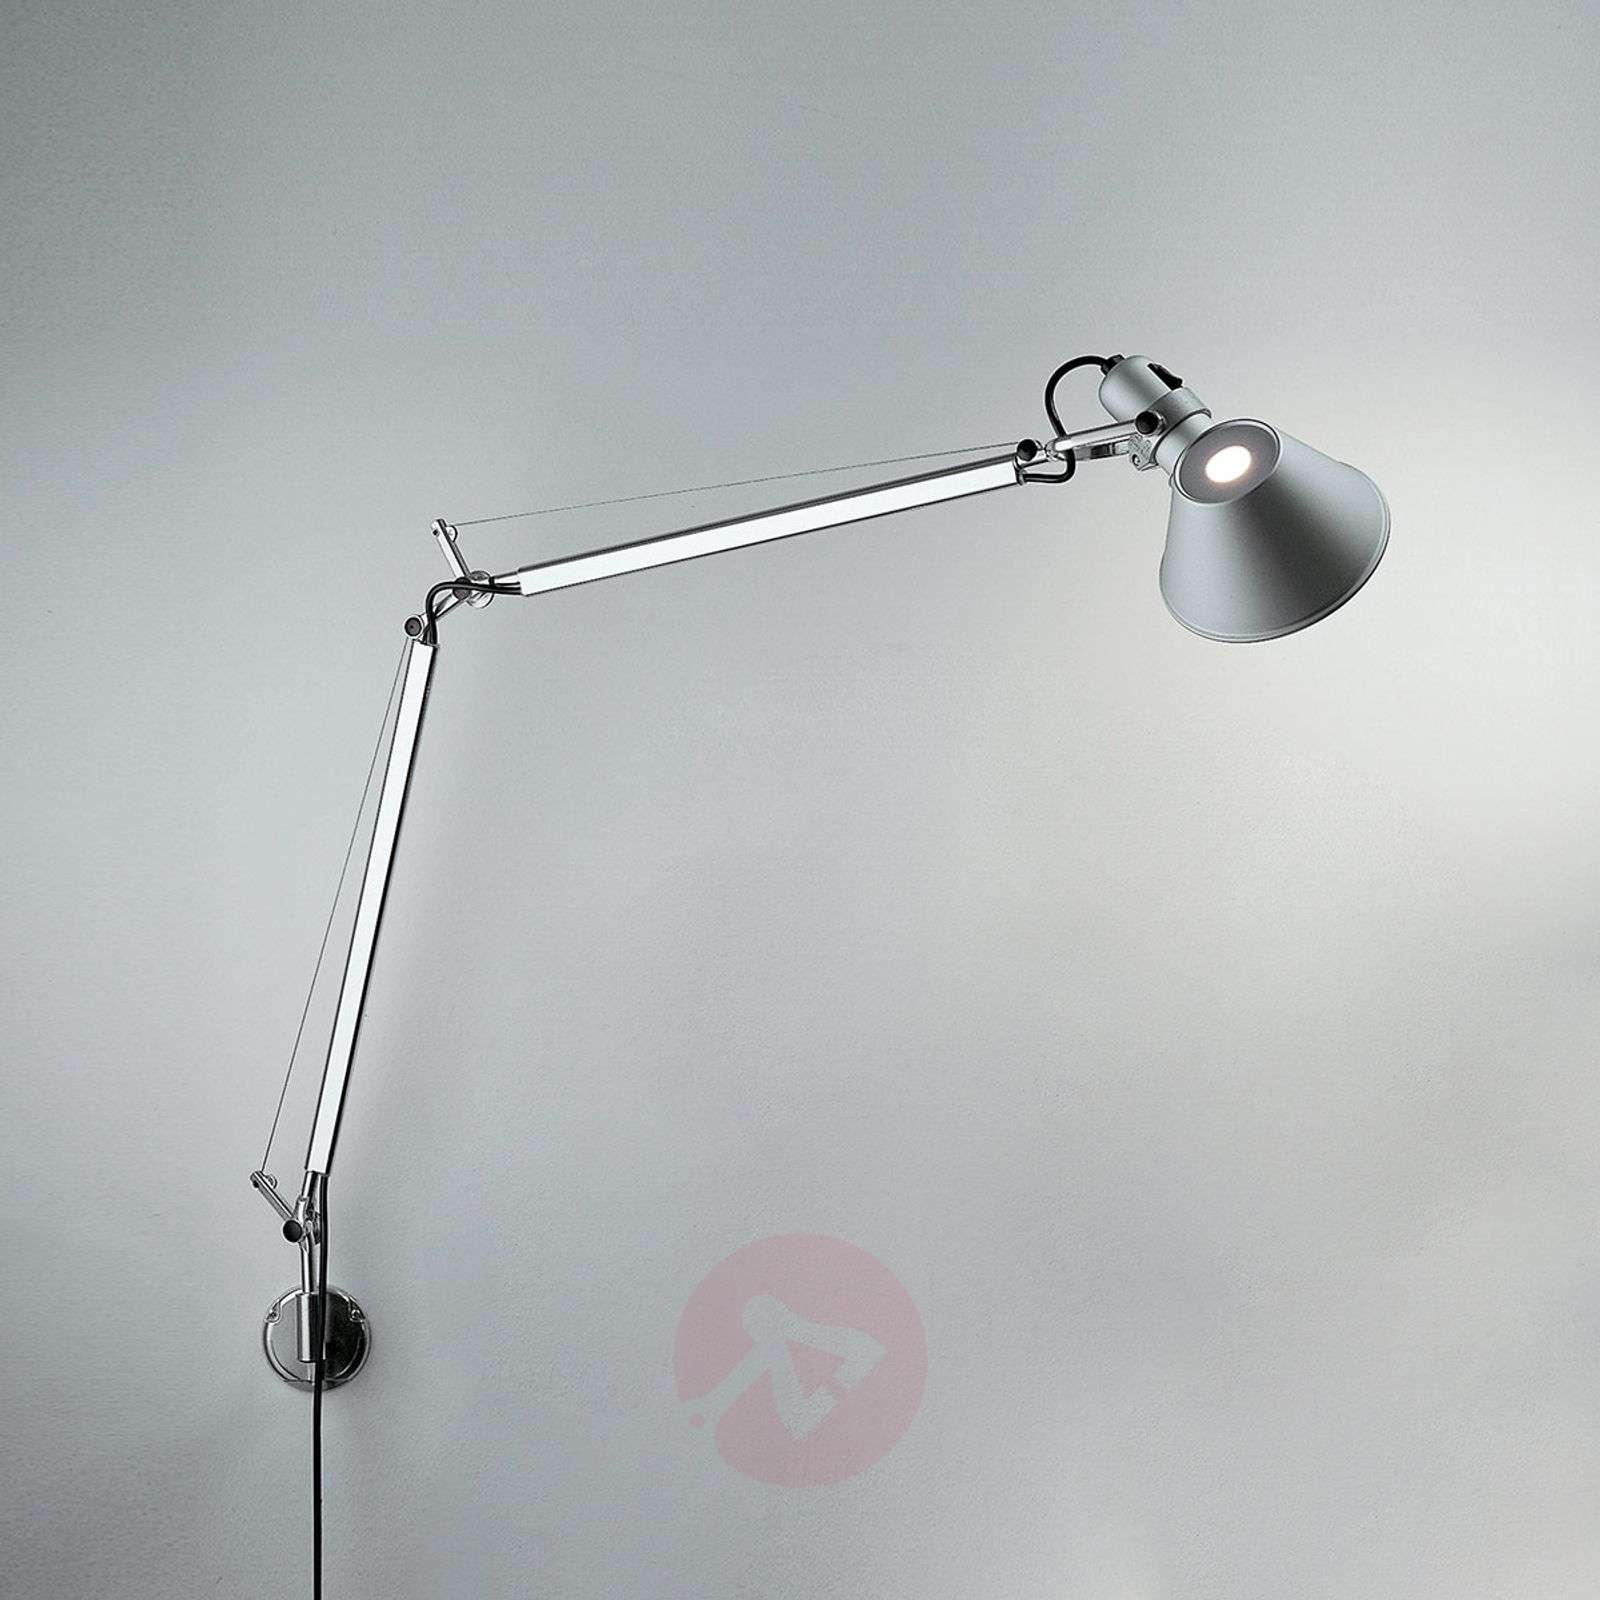 Artemide Tolomeo lámpara de pared LED 3.000 K-1060267-01